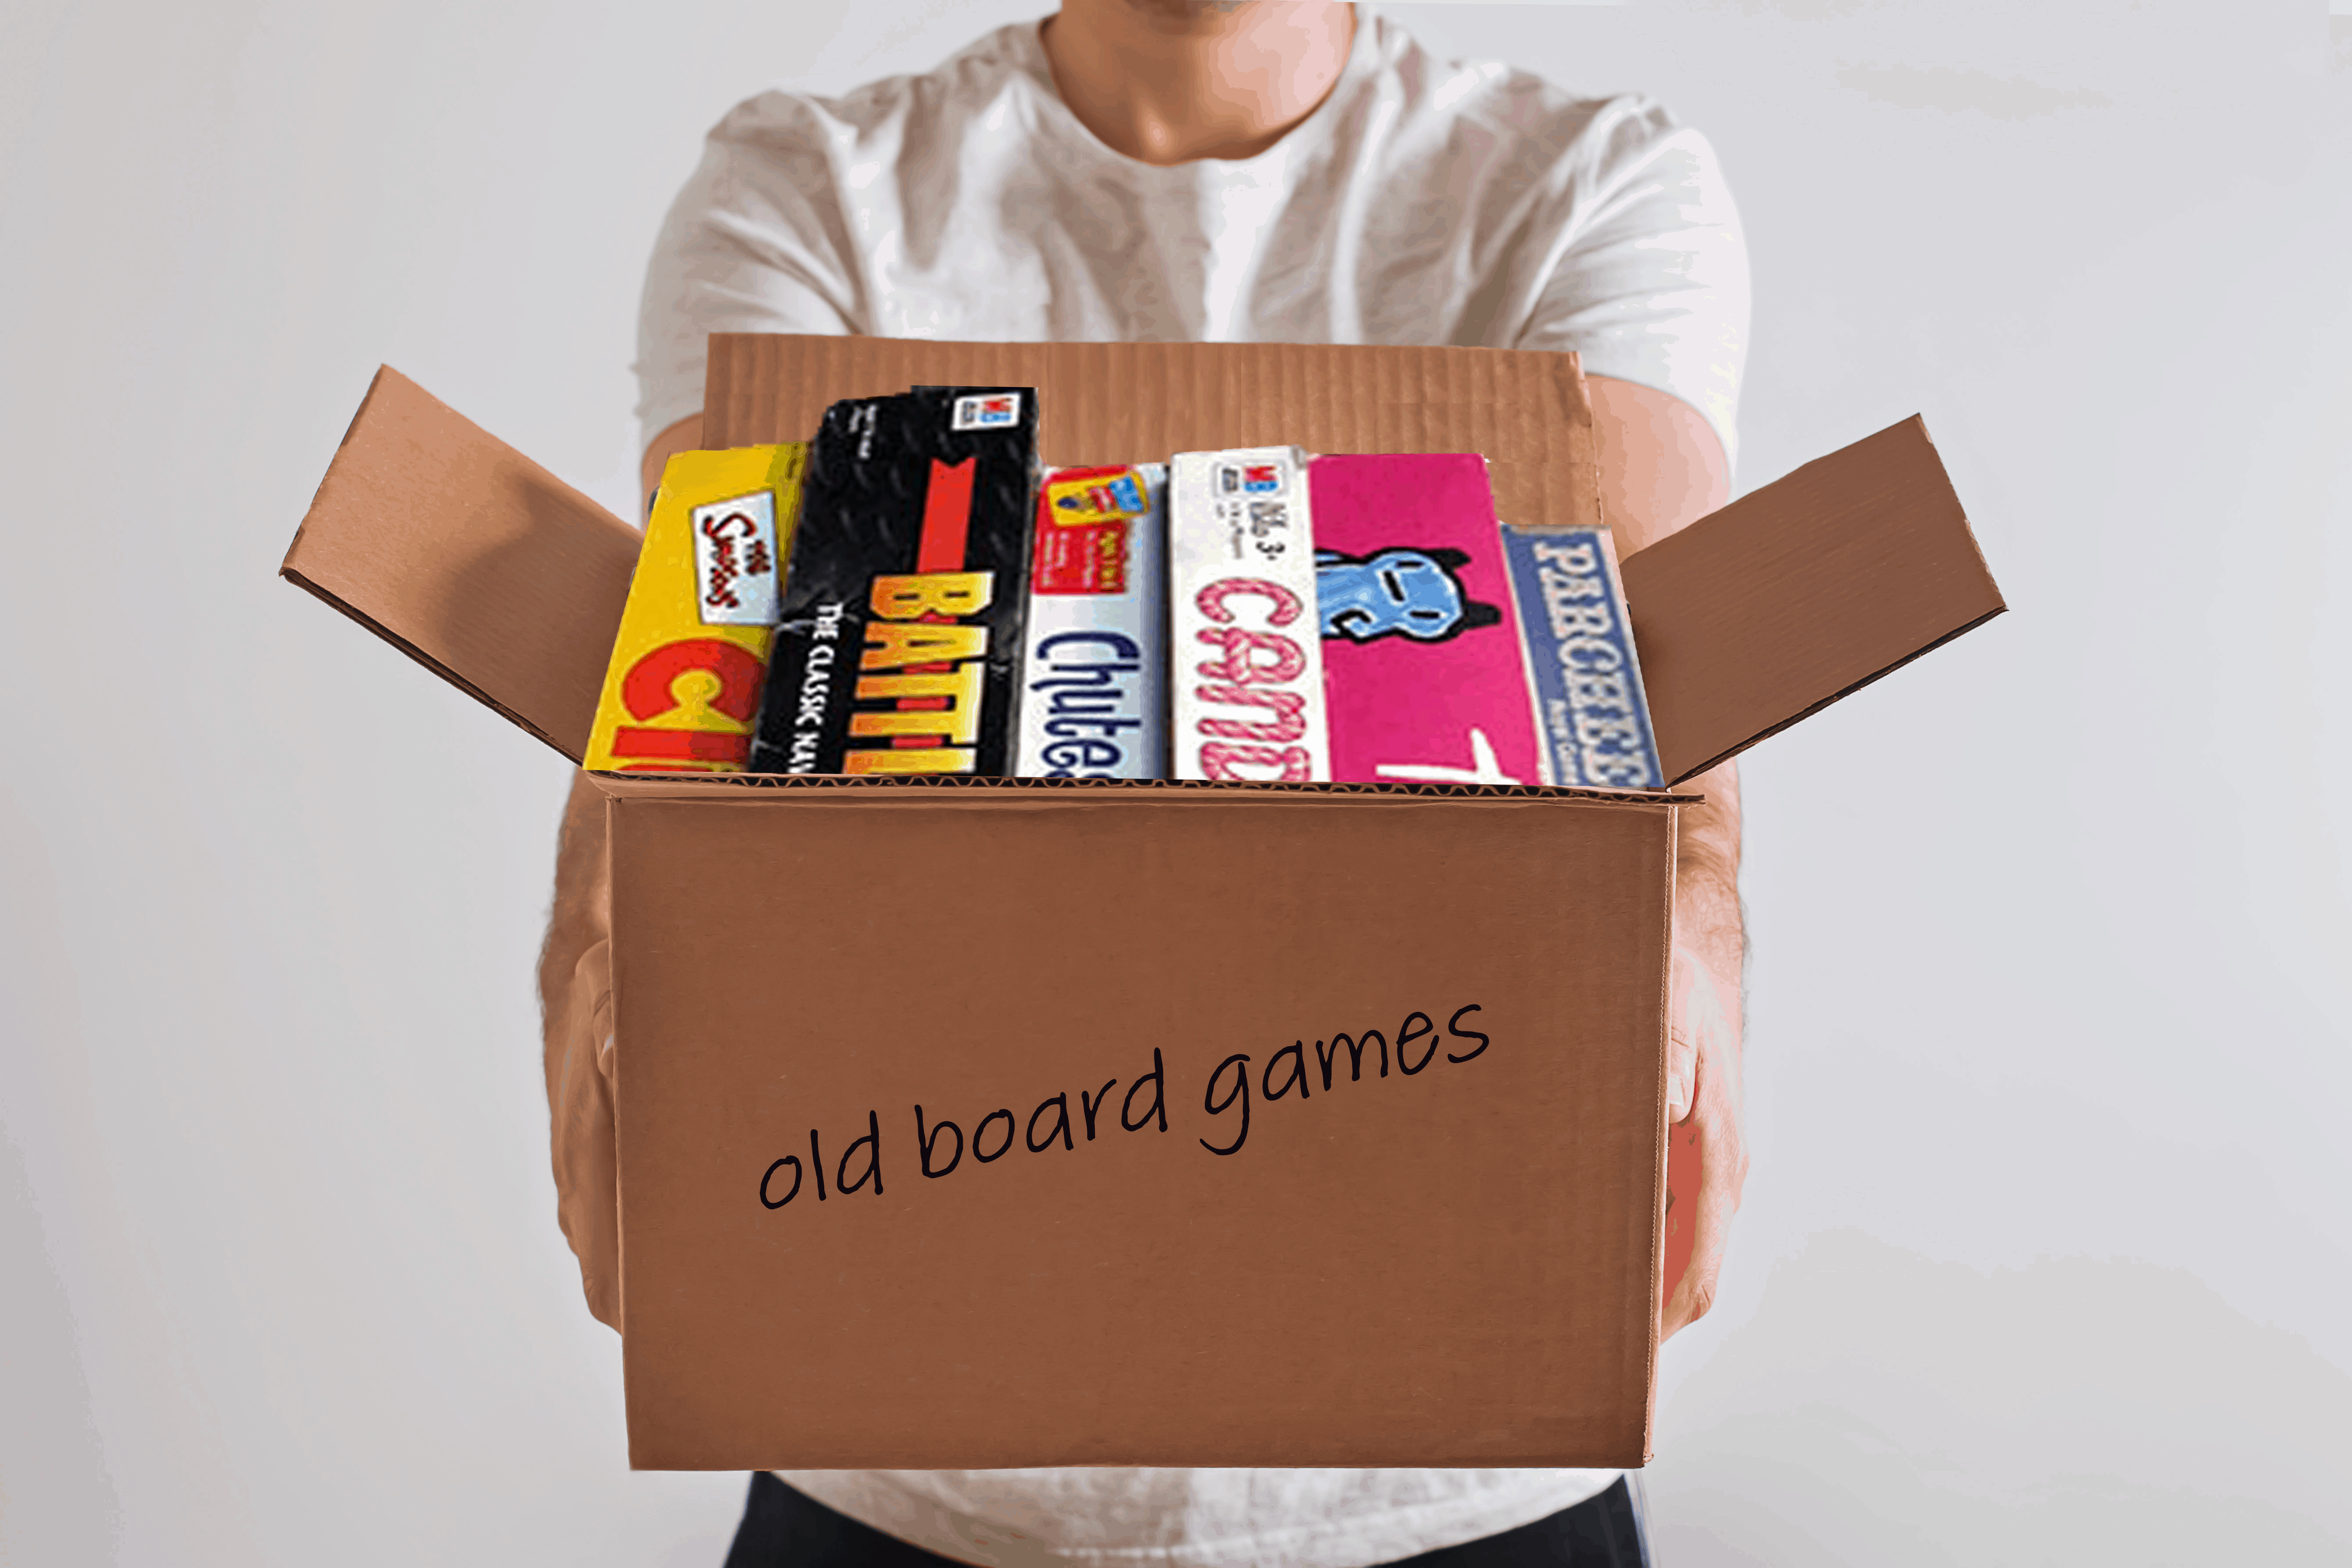 Where to donate old board games